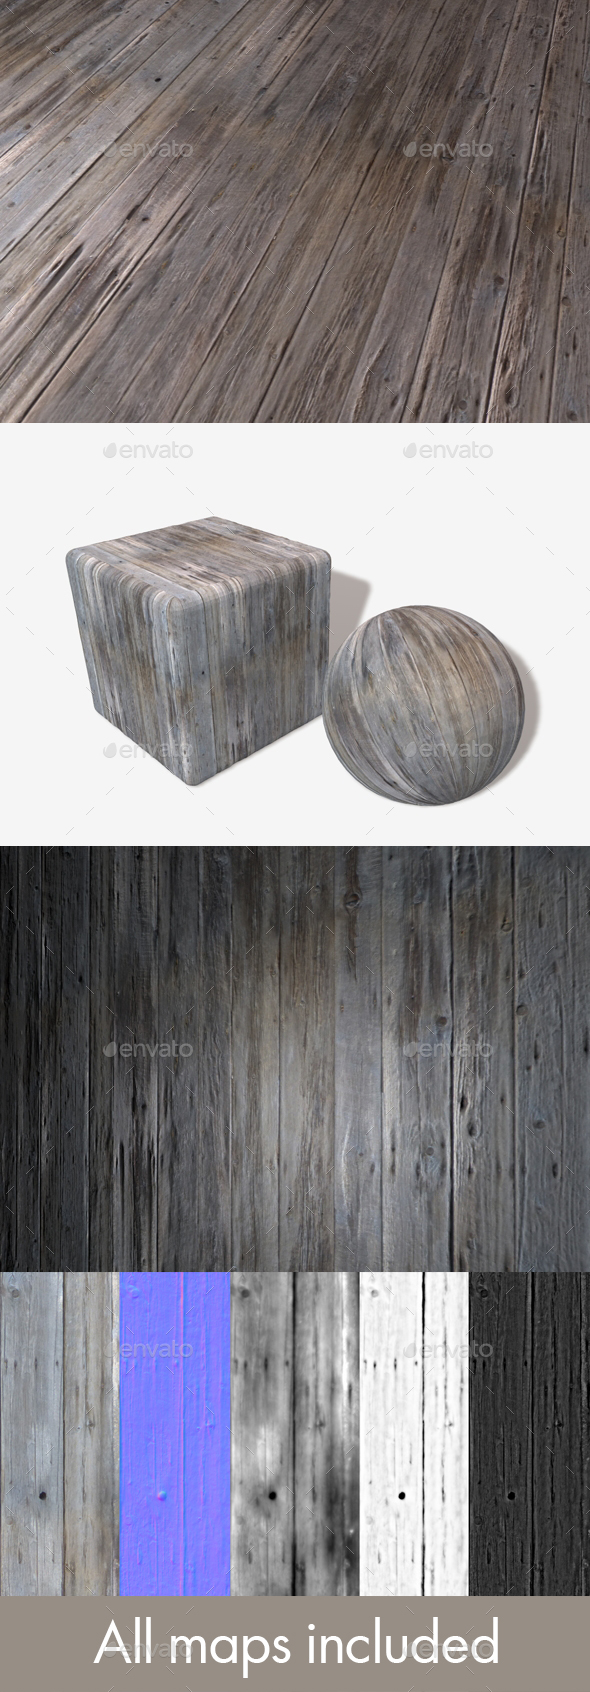 3DOcean Old Wooden Planks Seamless Texture 20032604